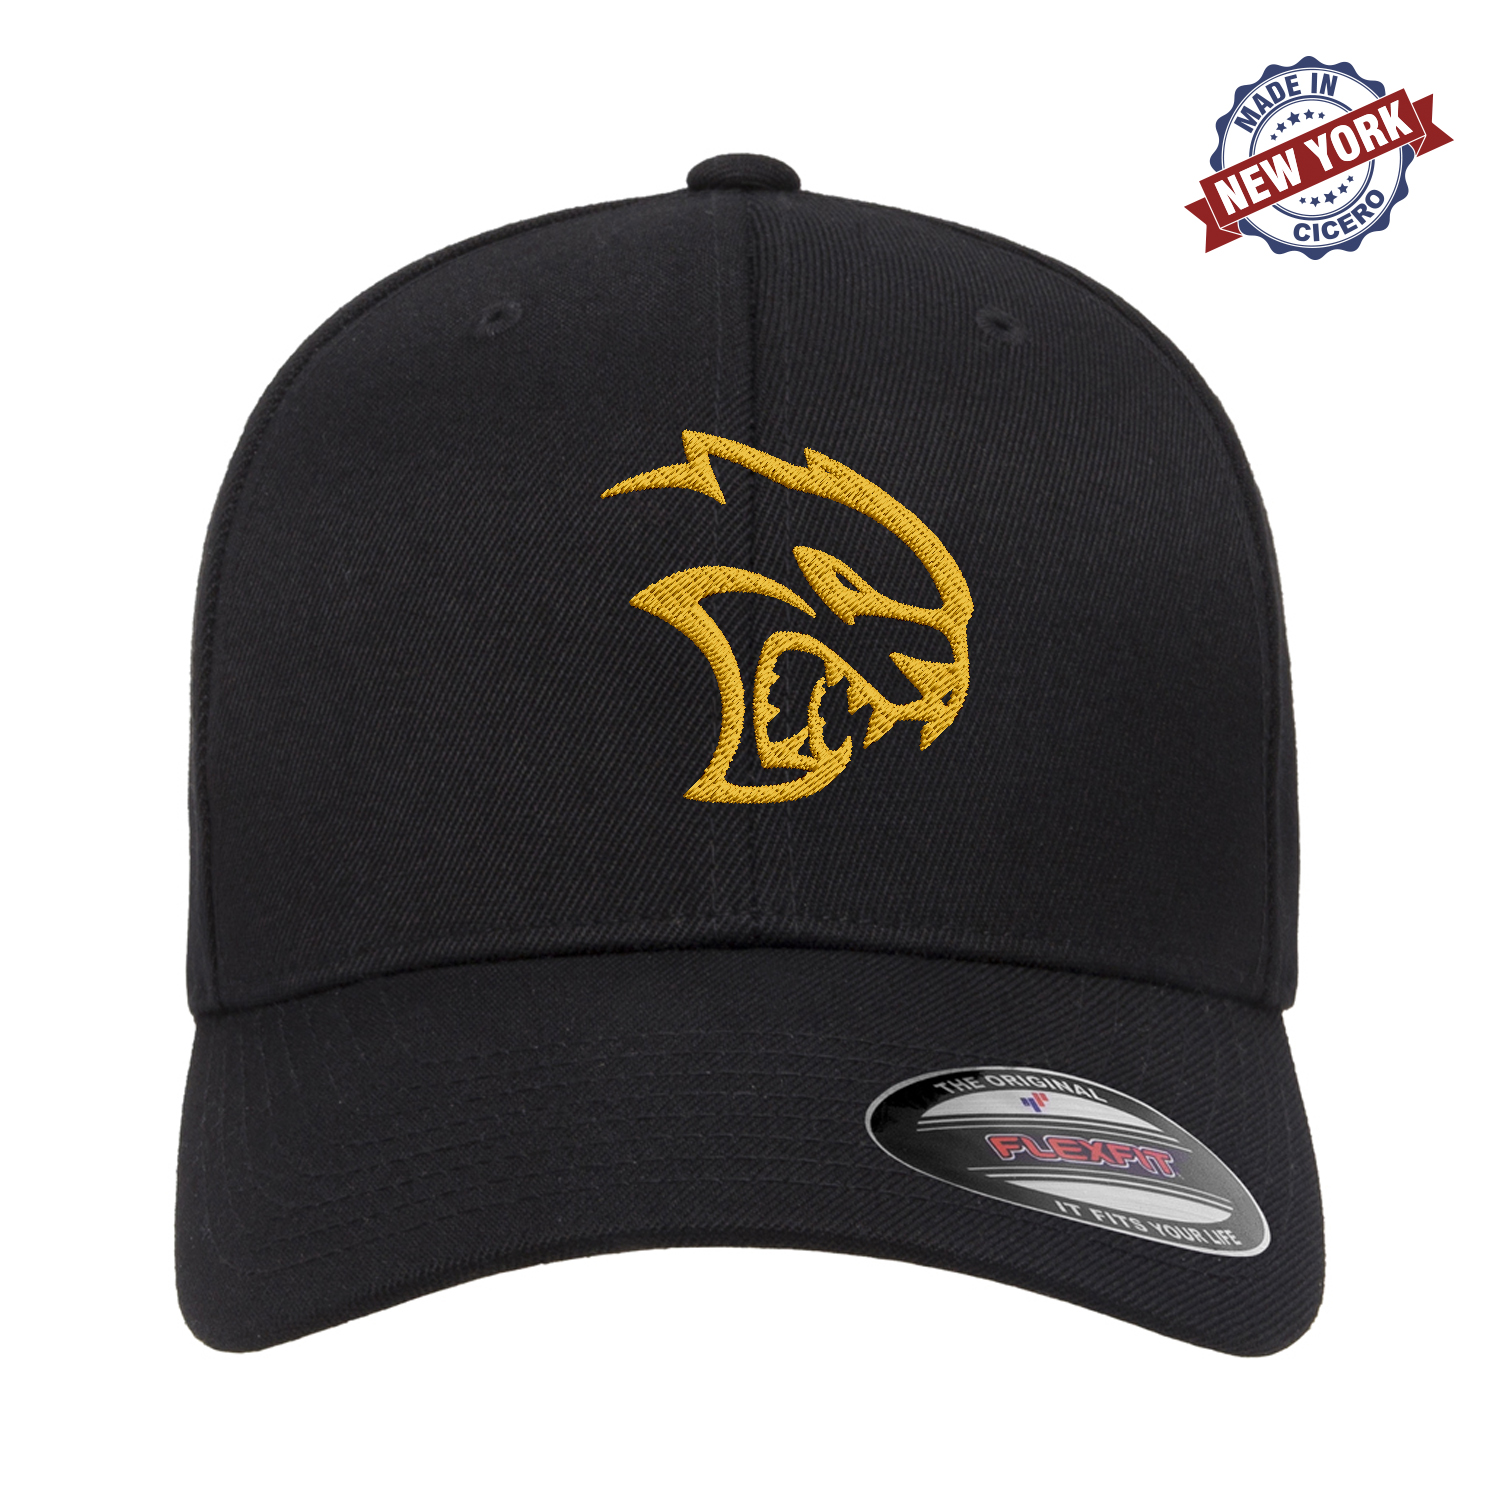 Dodge Hellcat Challenger Charger Emblem Embroidered FlexFit Fitted Hat Mopar SRT Red Black